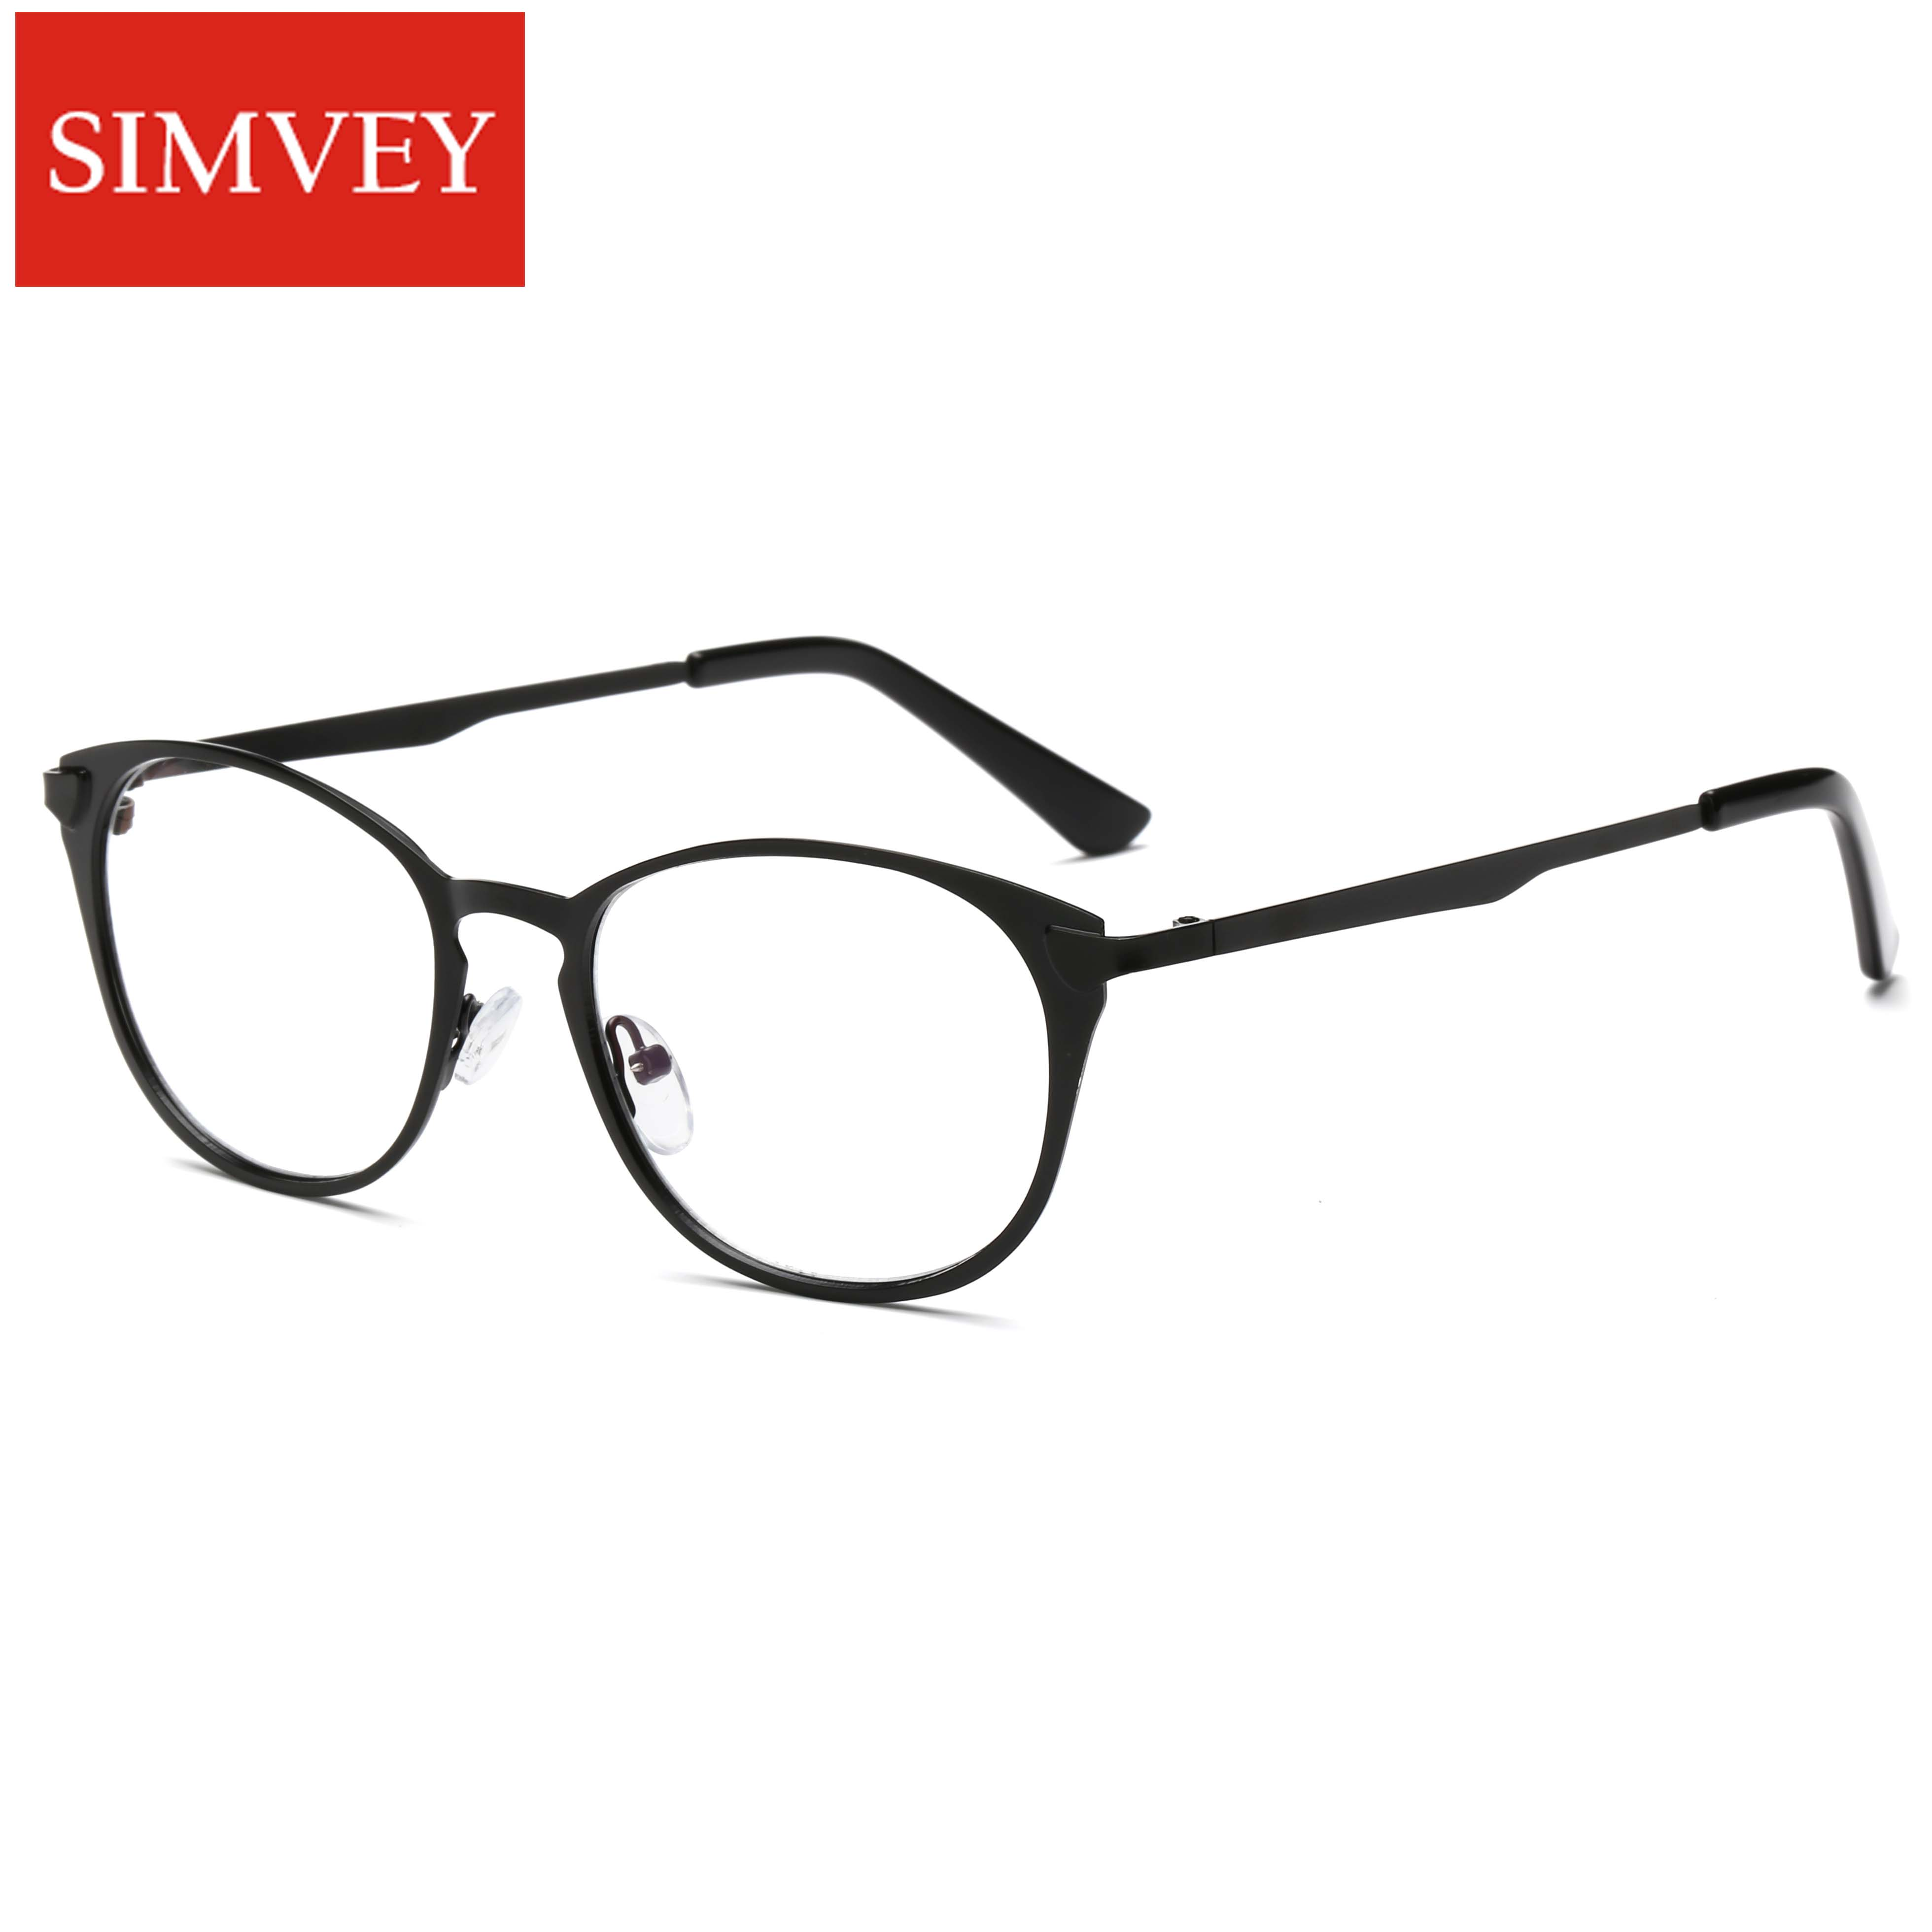 Frames for glasses in nigeria